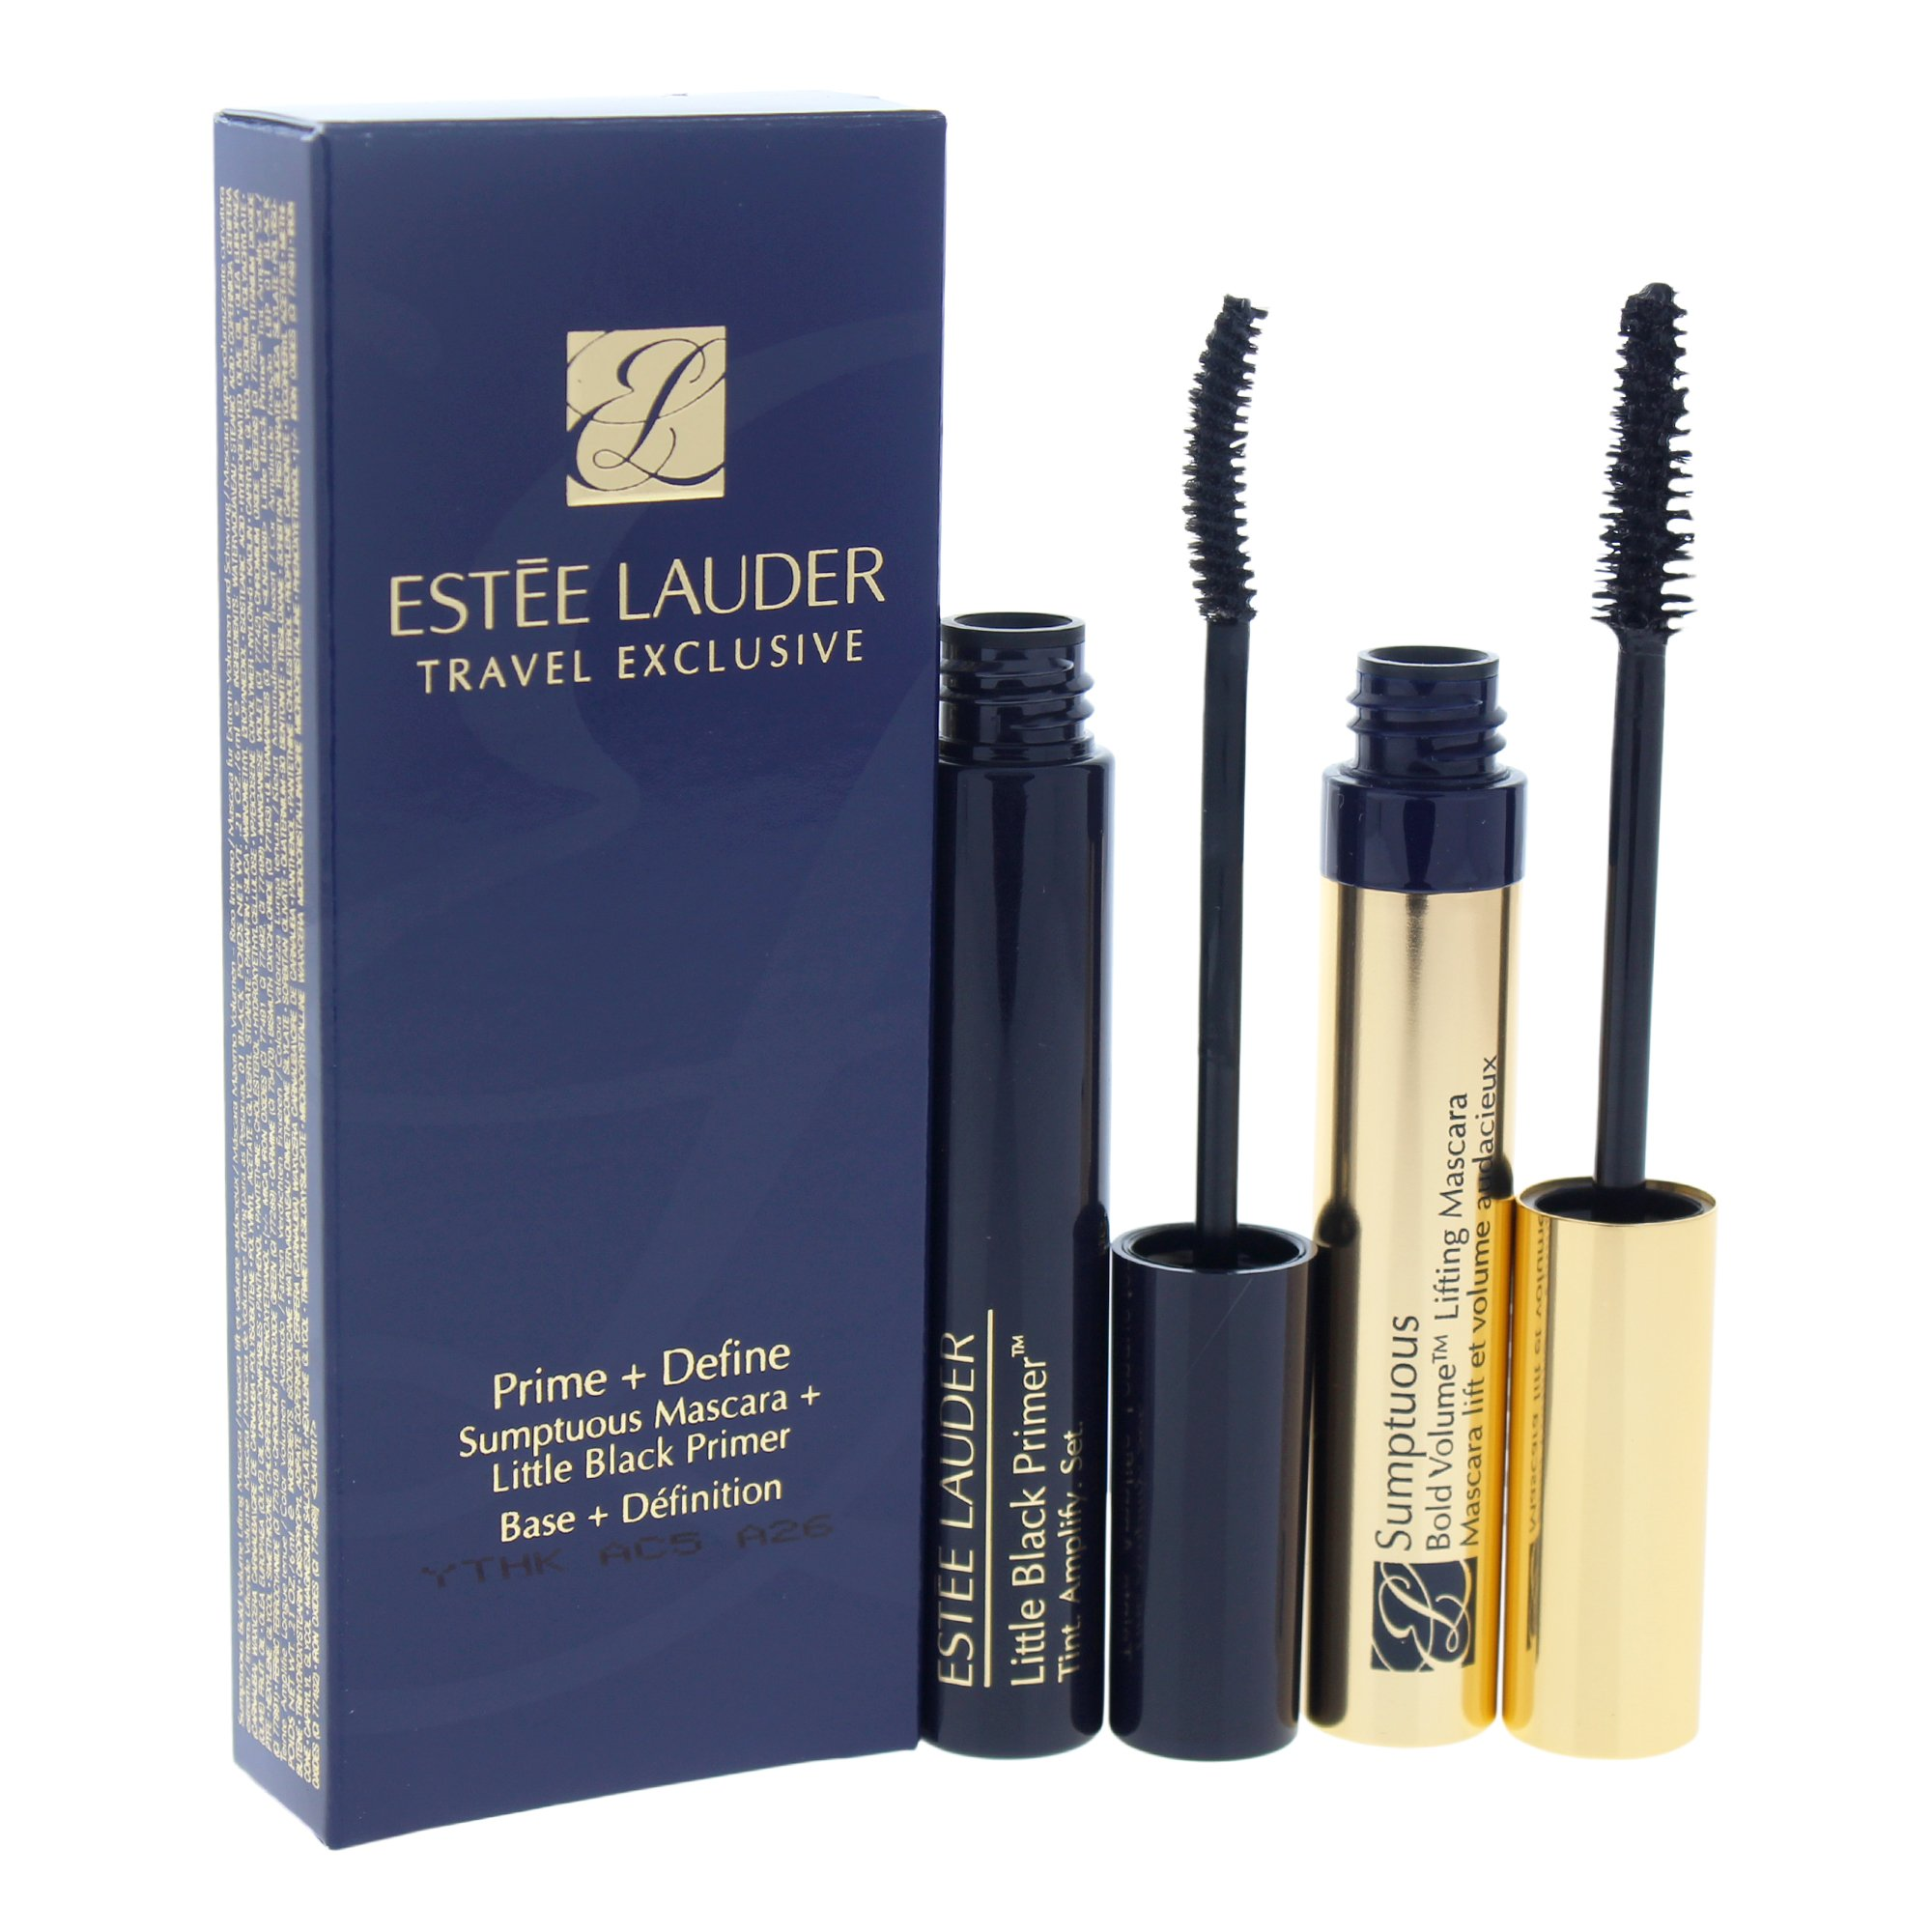 Estee Lauder Prime + Define Travel Exclusive 2 Piece Gift Set